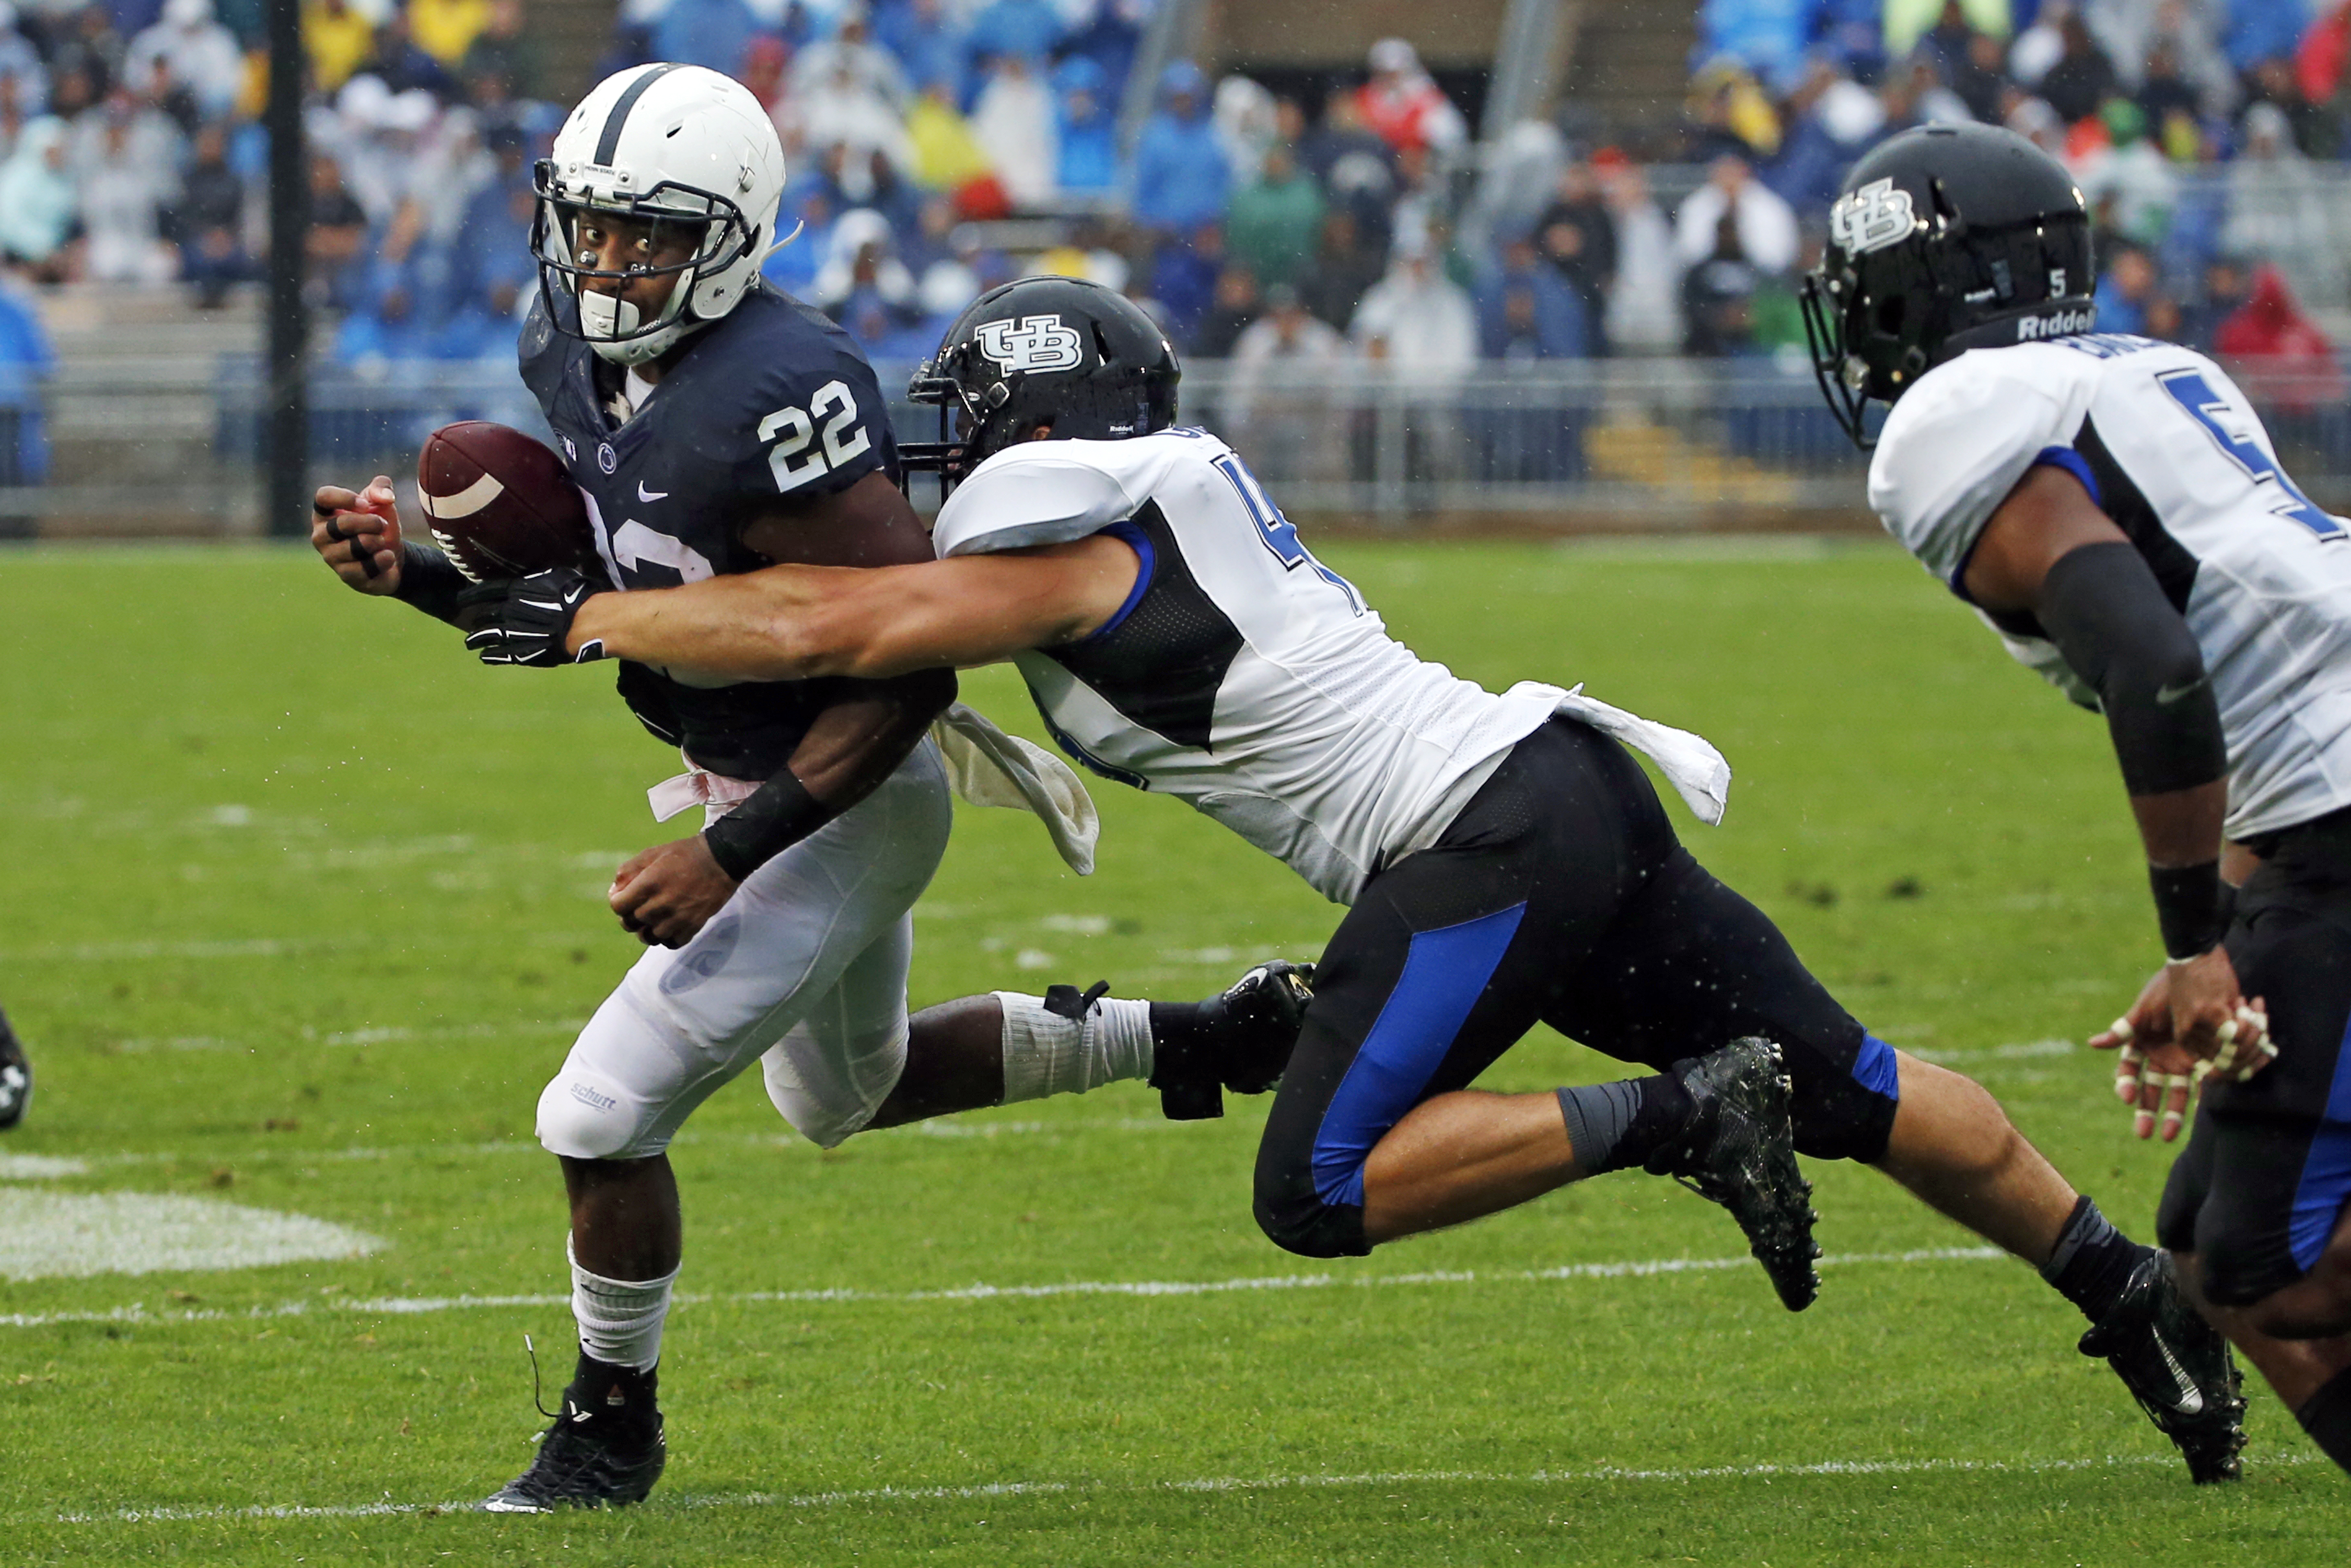 Penn State running back Akeel Lynch (22) tries to turn the corner on Buffalo defensive end Solomon Jackson (41) during the first half of an NCAA college football game in State College, Pa, Saturday, Sept. 12, 2015. (AP Photo/Gene J. Puskar)